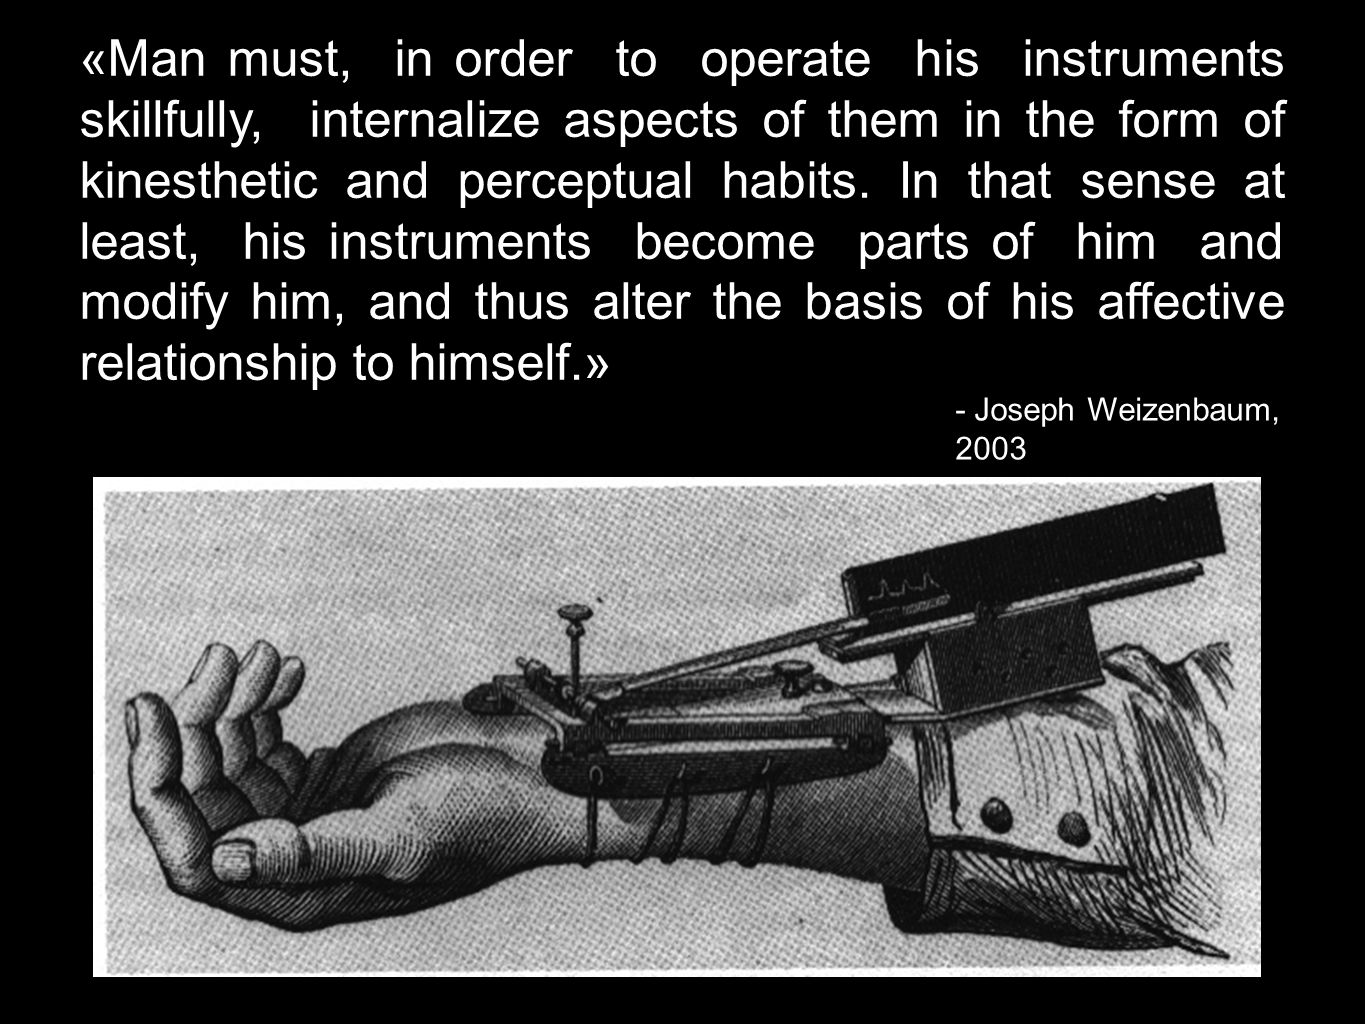 «Man must, in order to operate his instruments skillfully, internalize aspects of them in the form of kinesthetic and perceptual habits. In that sense at least, his instruments become parts of him and modify him, and thus alter the basis of his affective relationship to himself.»